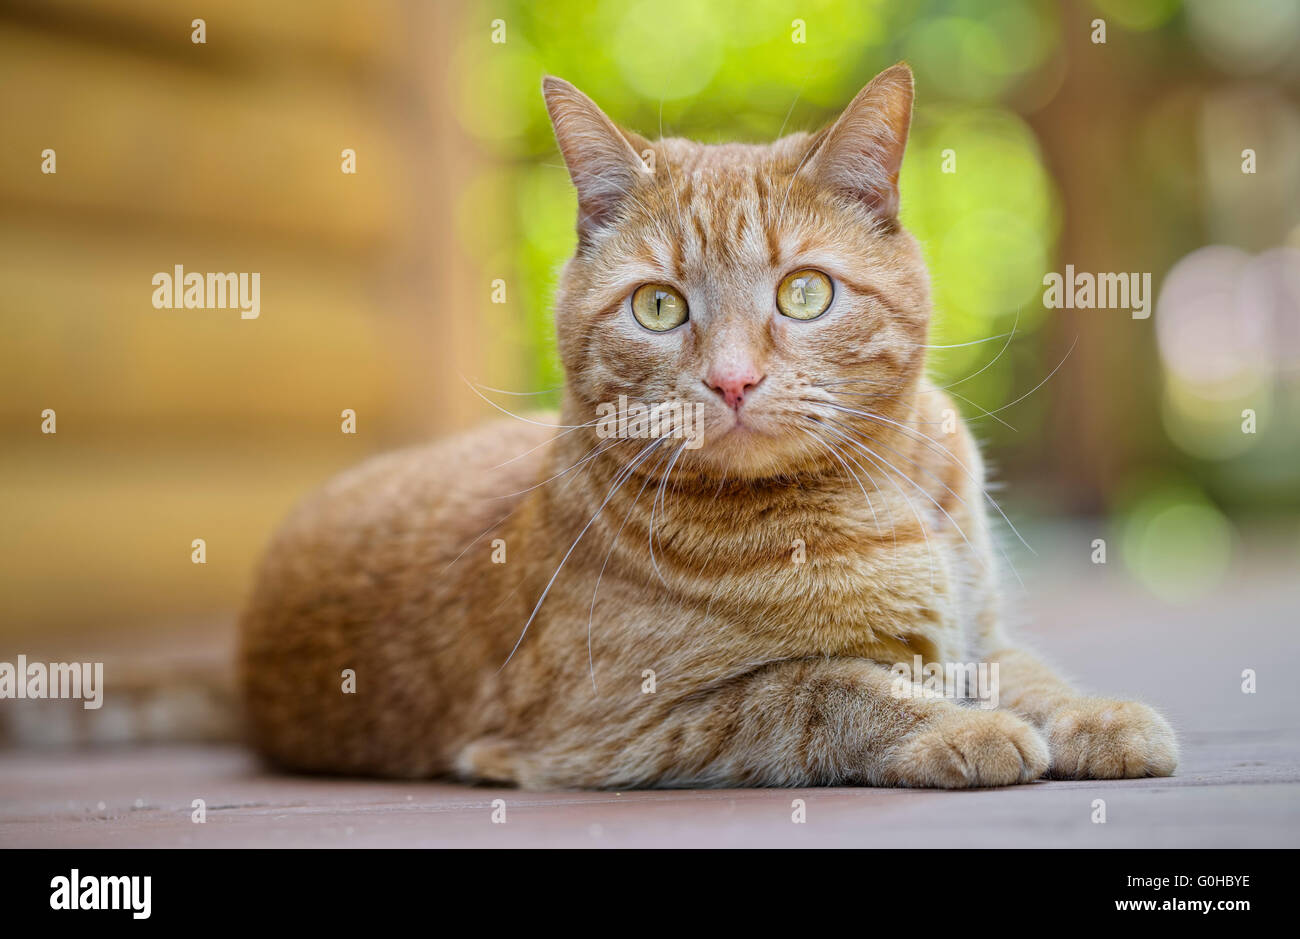 Male orange tabby cat lying down outdoors paying attention to surroundings - Stock Image